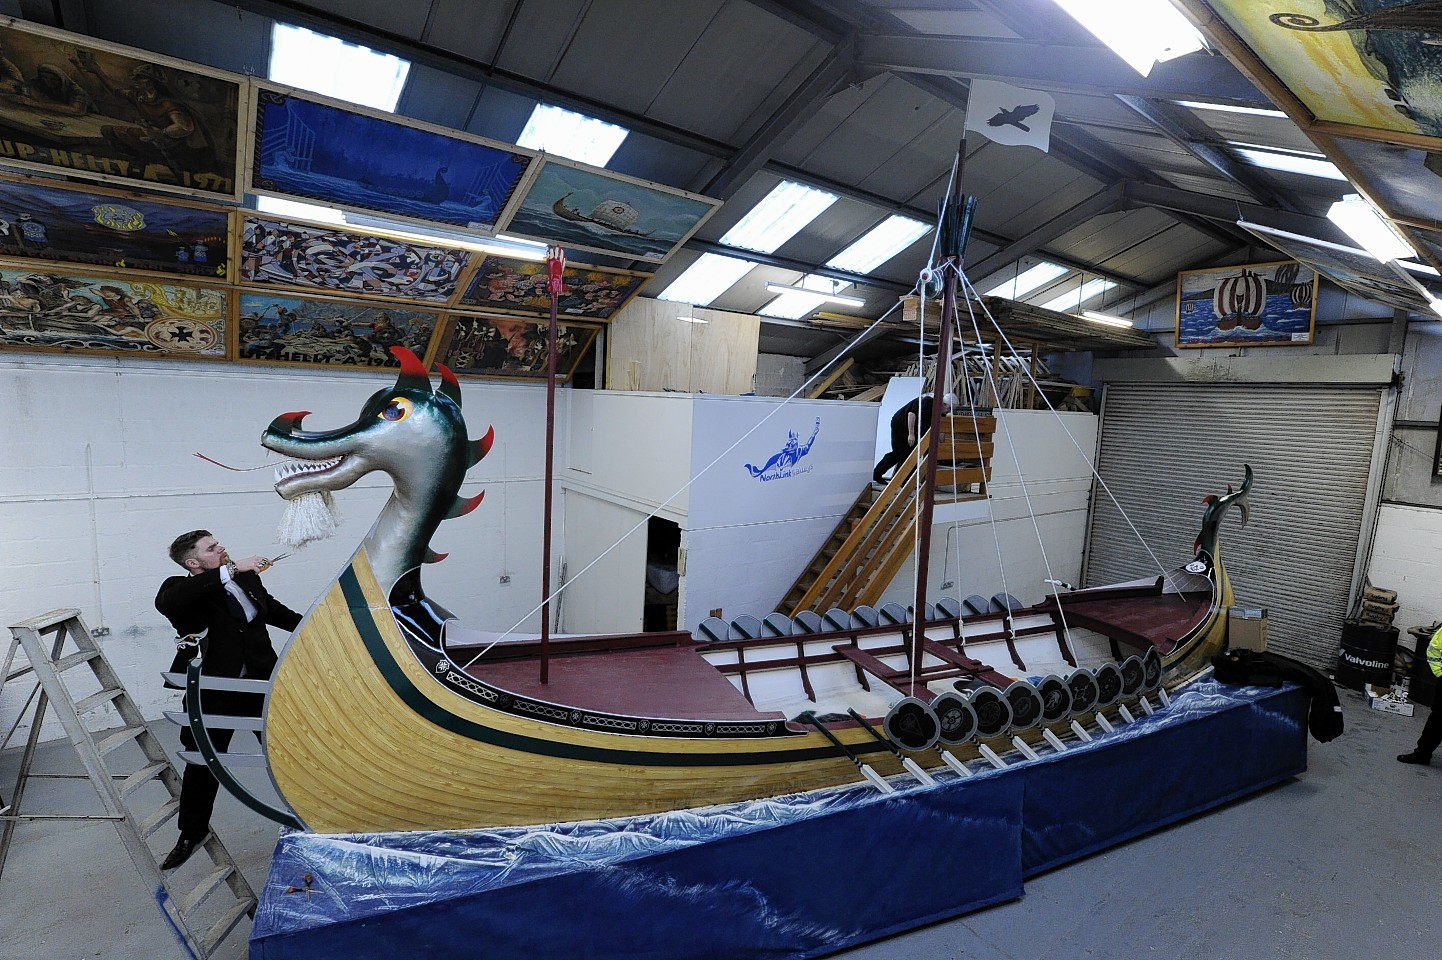 Preparations for Up Helly Aa in Shetland as it gets under way (pictures by Kenny Elrick)